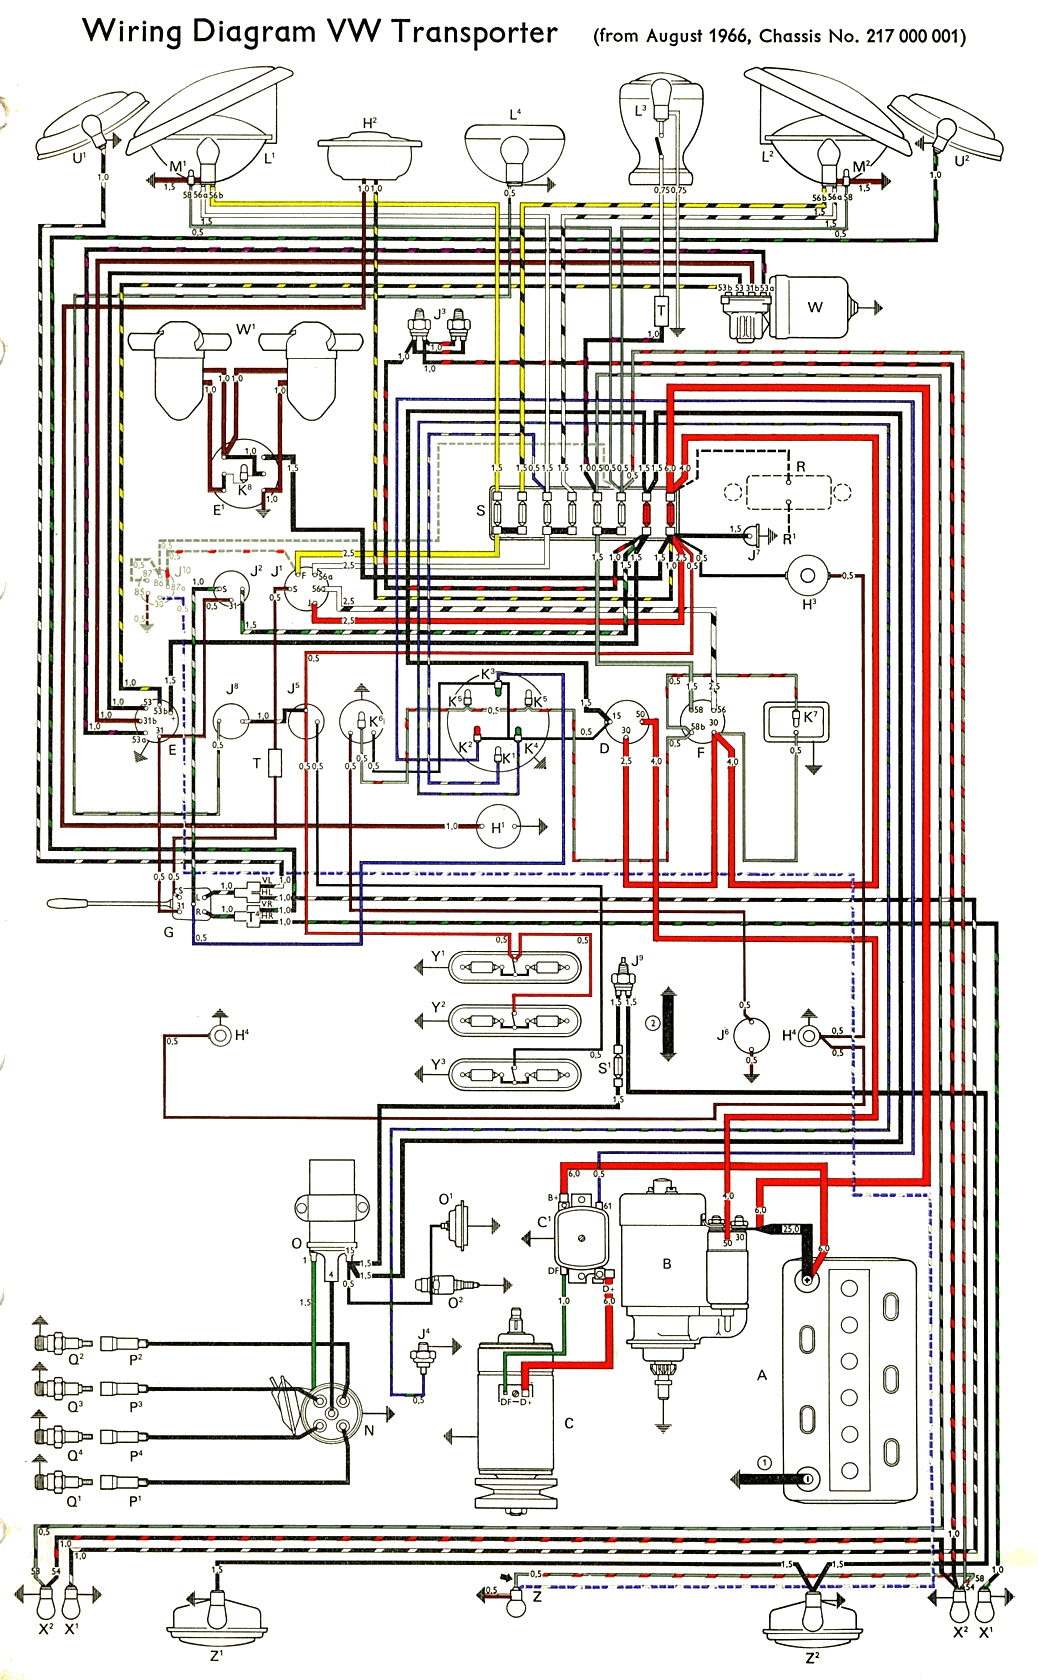 hight resolution of wiring 1967 diagram vw beetle ignition simple wiring diagram 1973 vw beetle wiring diagram 1967 vw